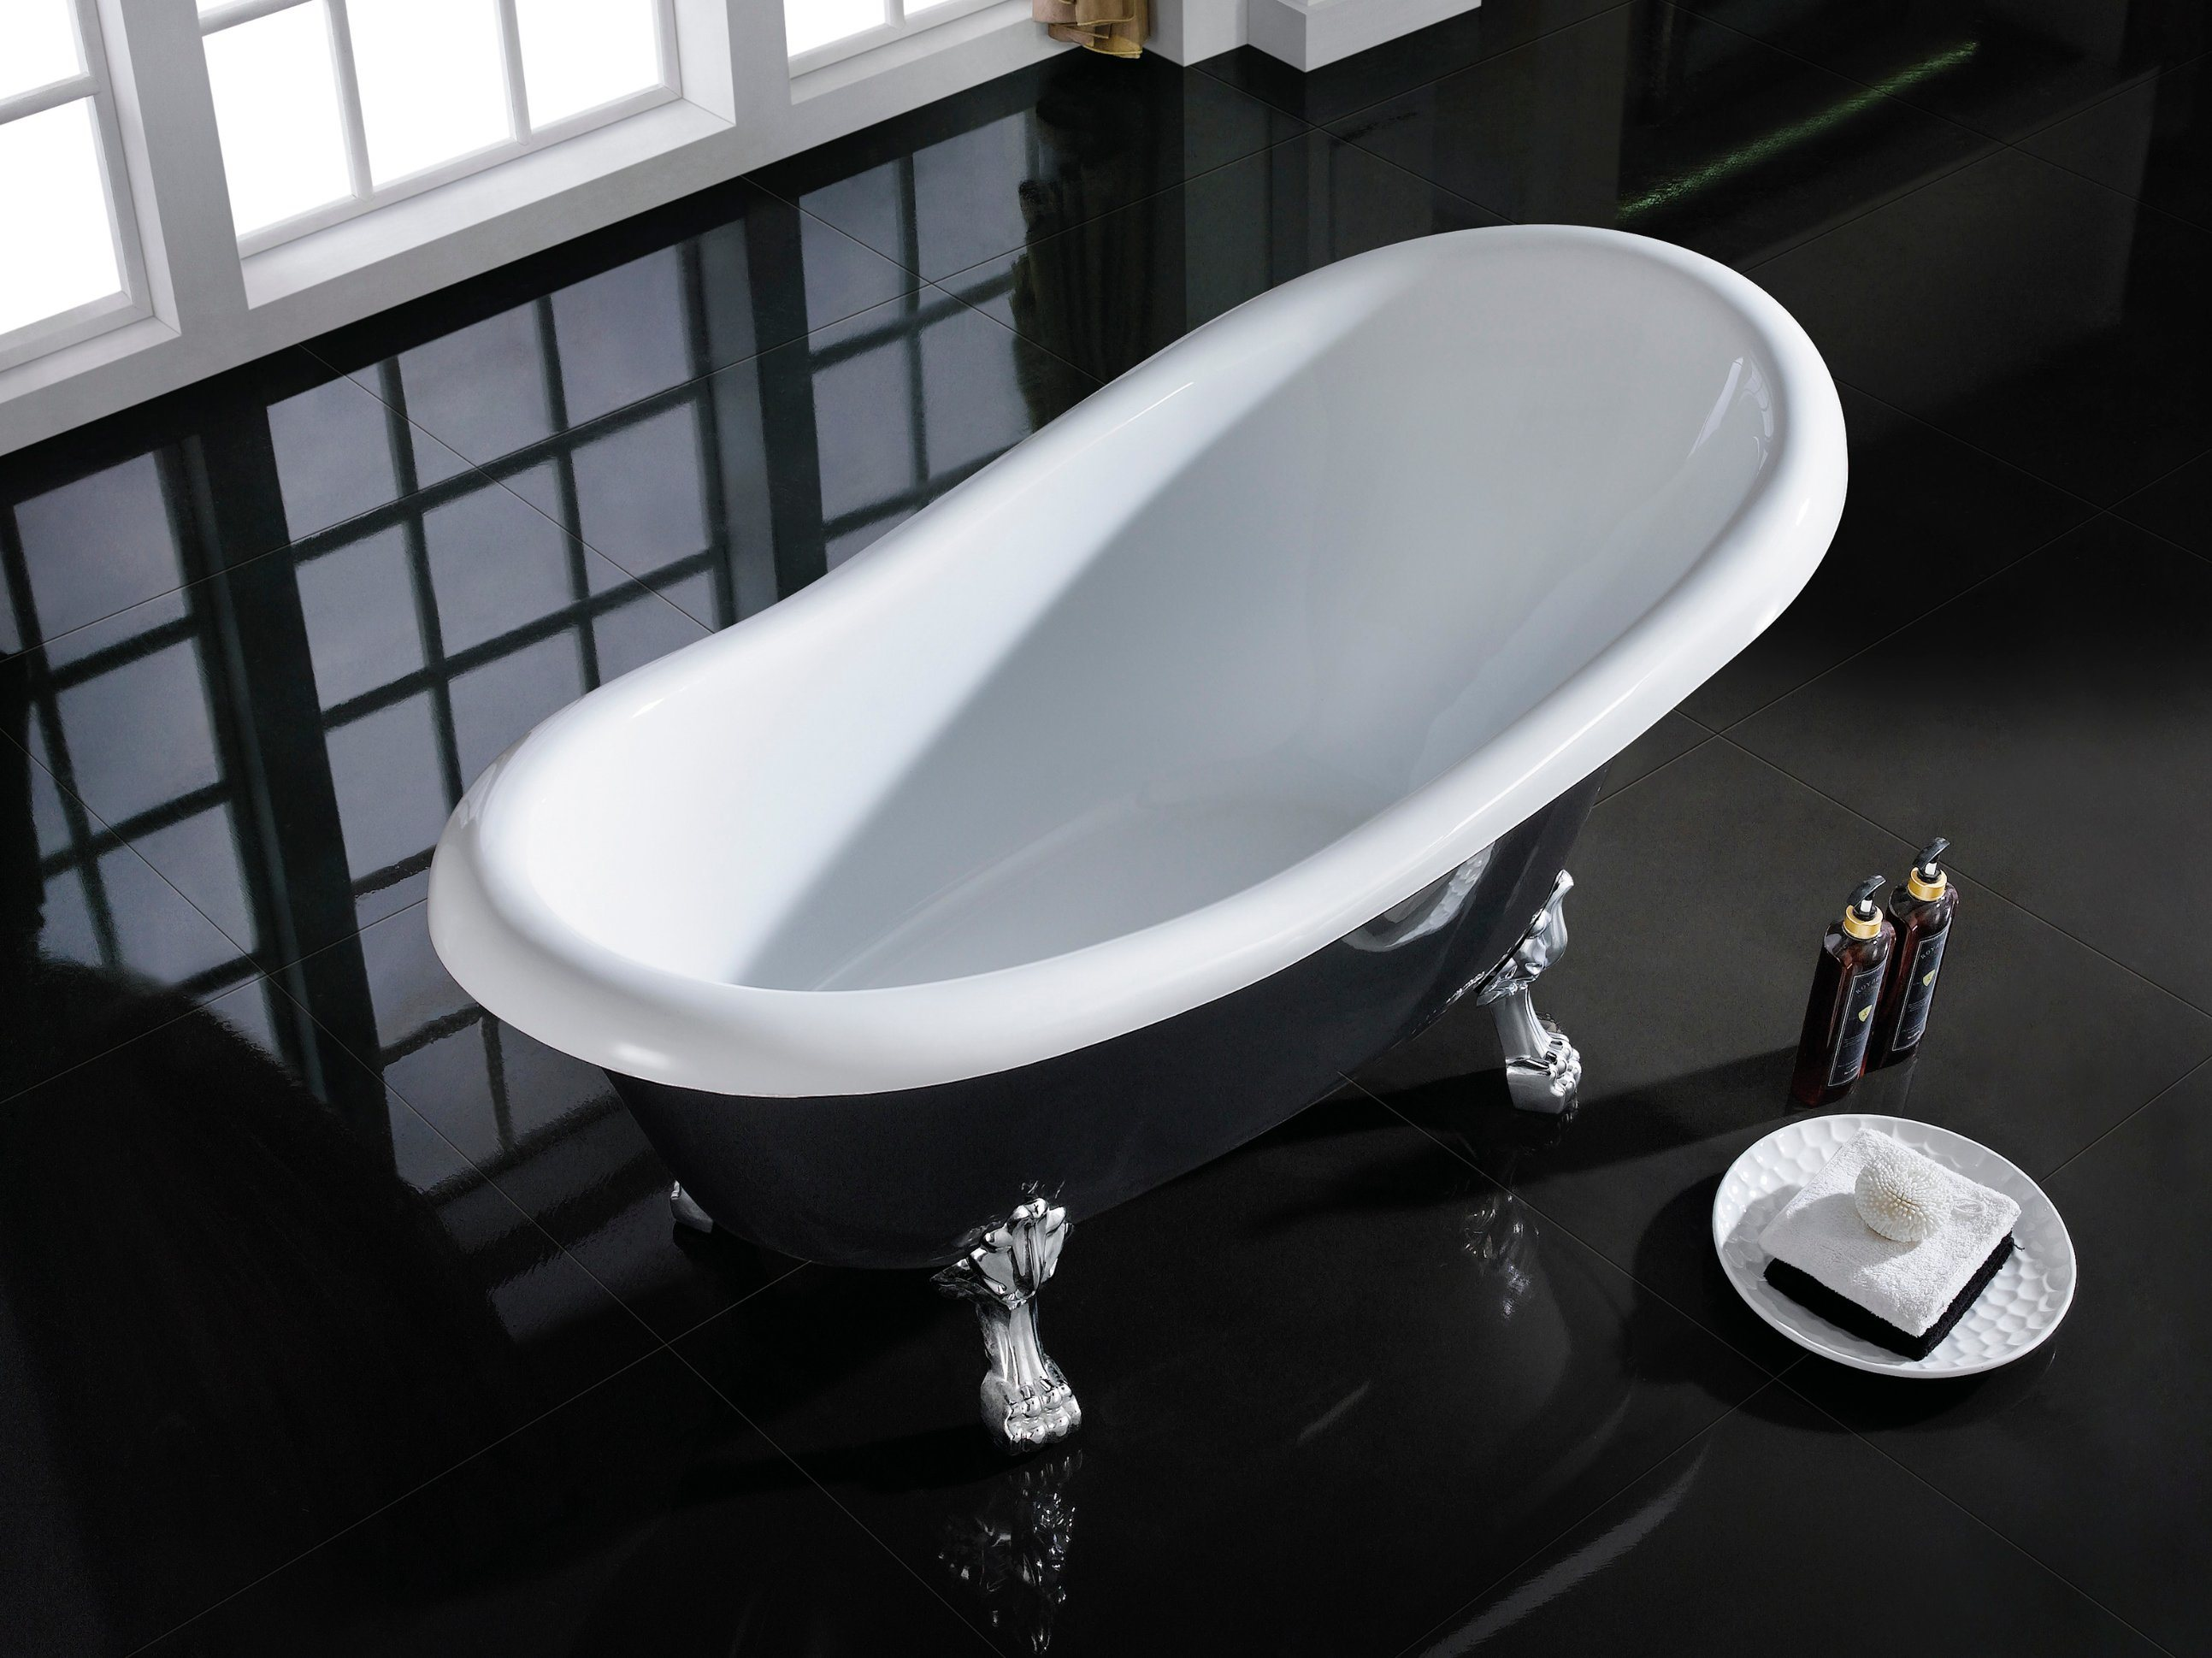 China Classical Black Slipper Acrylic Clawfoot Bath Tub with Matt ...